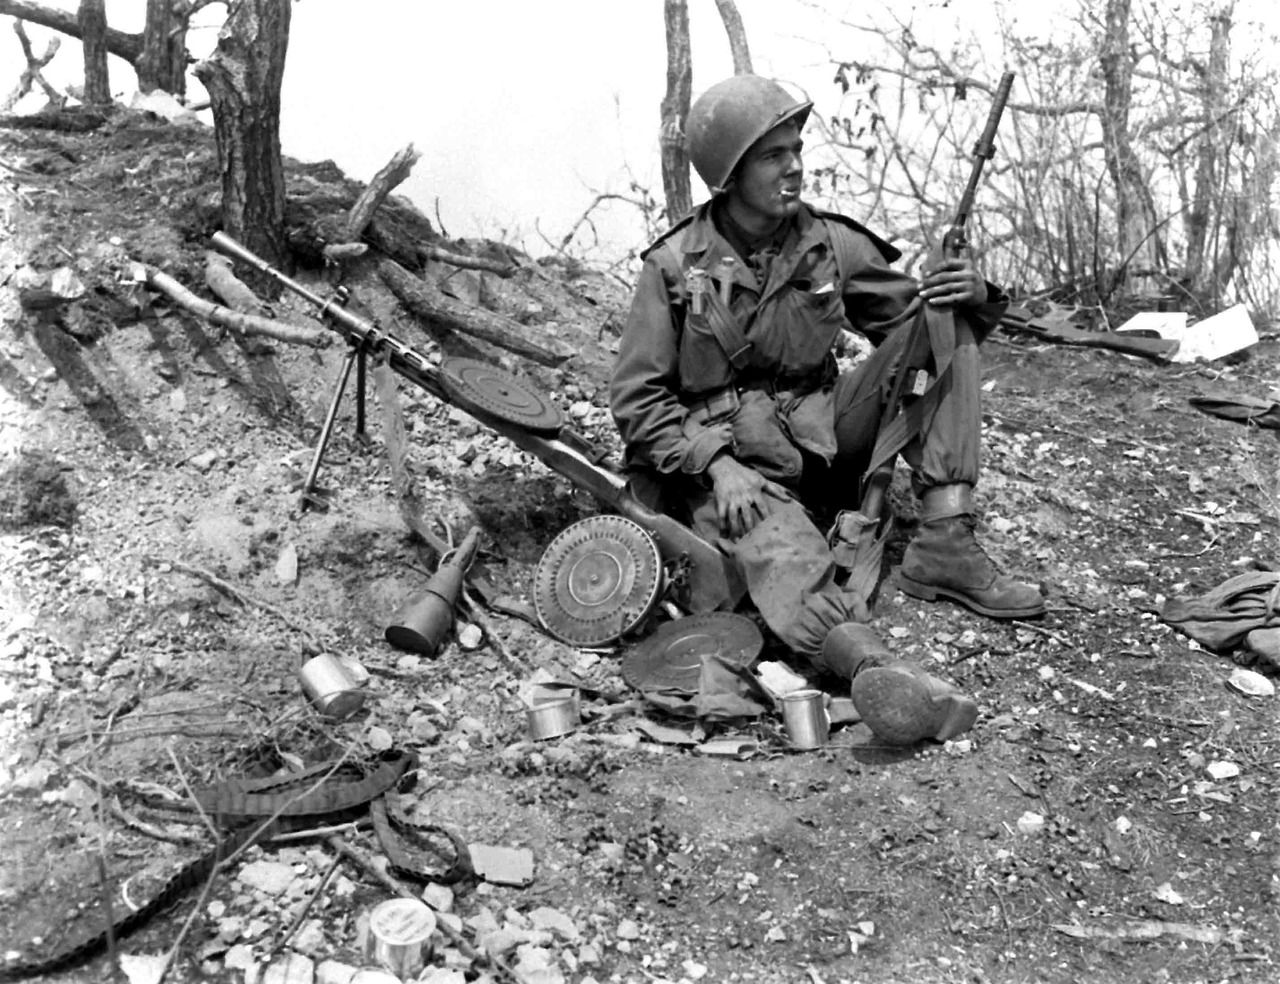 An American soldier with a Russian Degtaryov DP-27 light machine gun. Note the grenade launching adapter on the M1 carbine he is carrying.